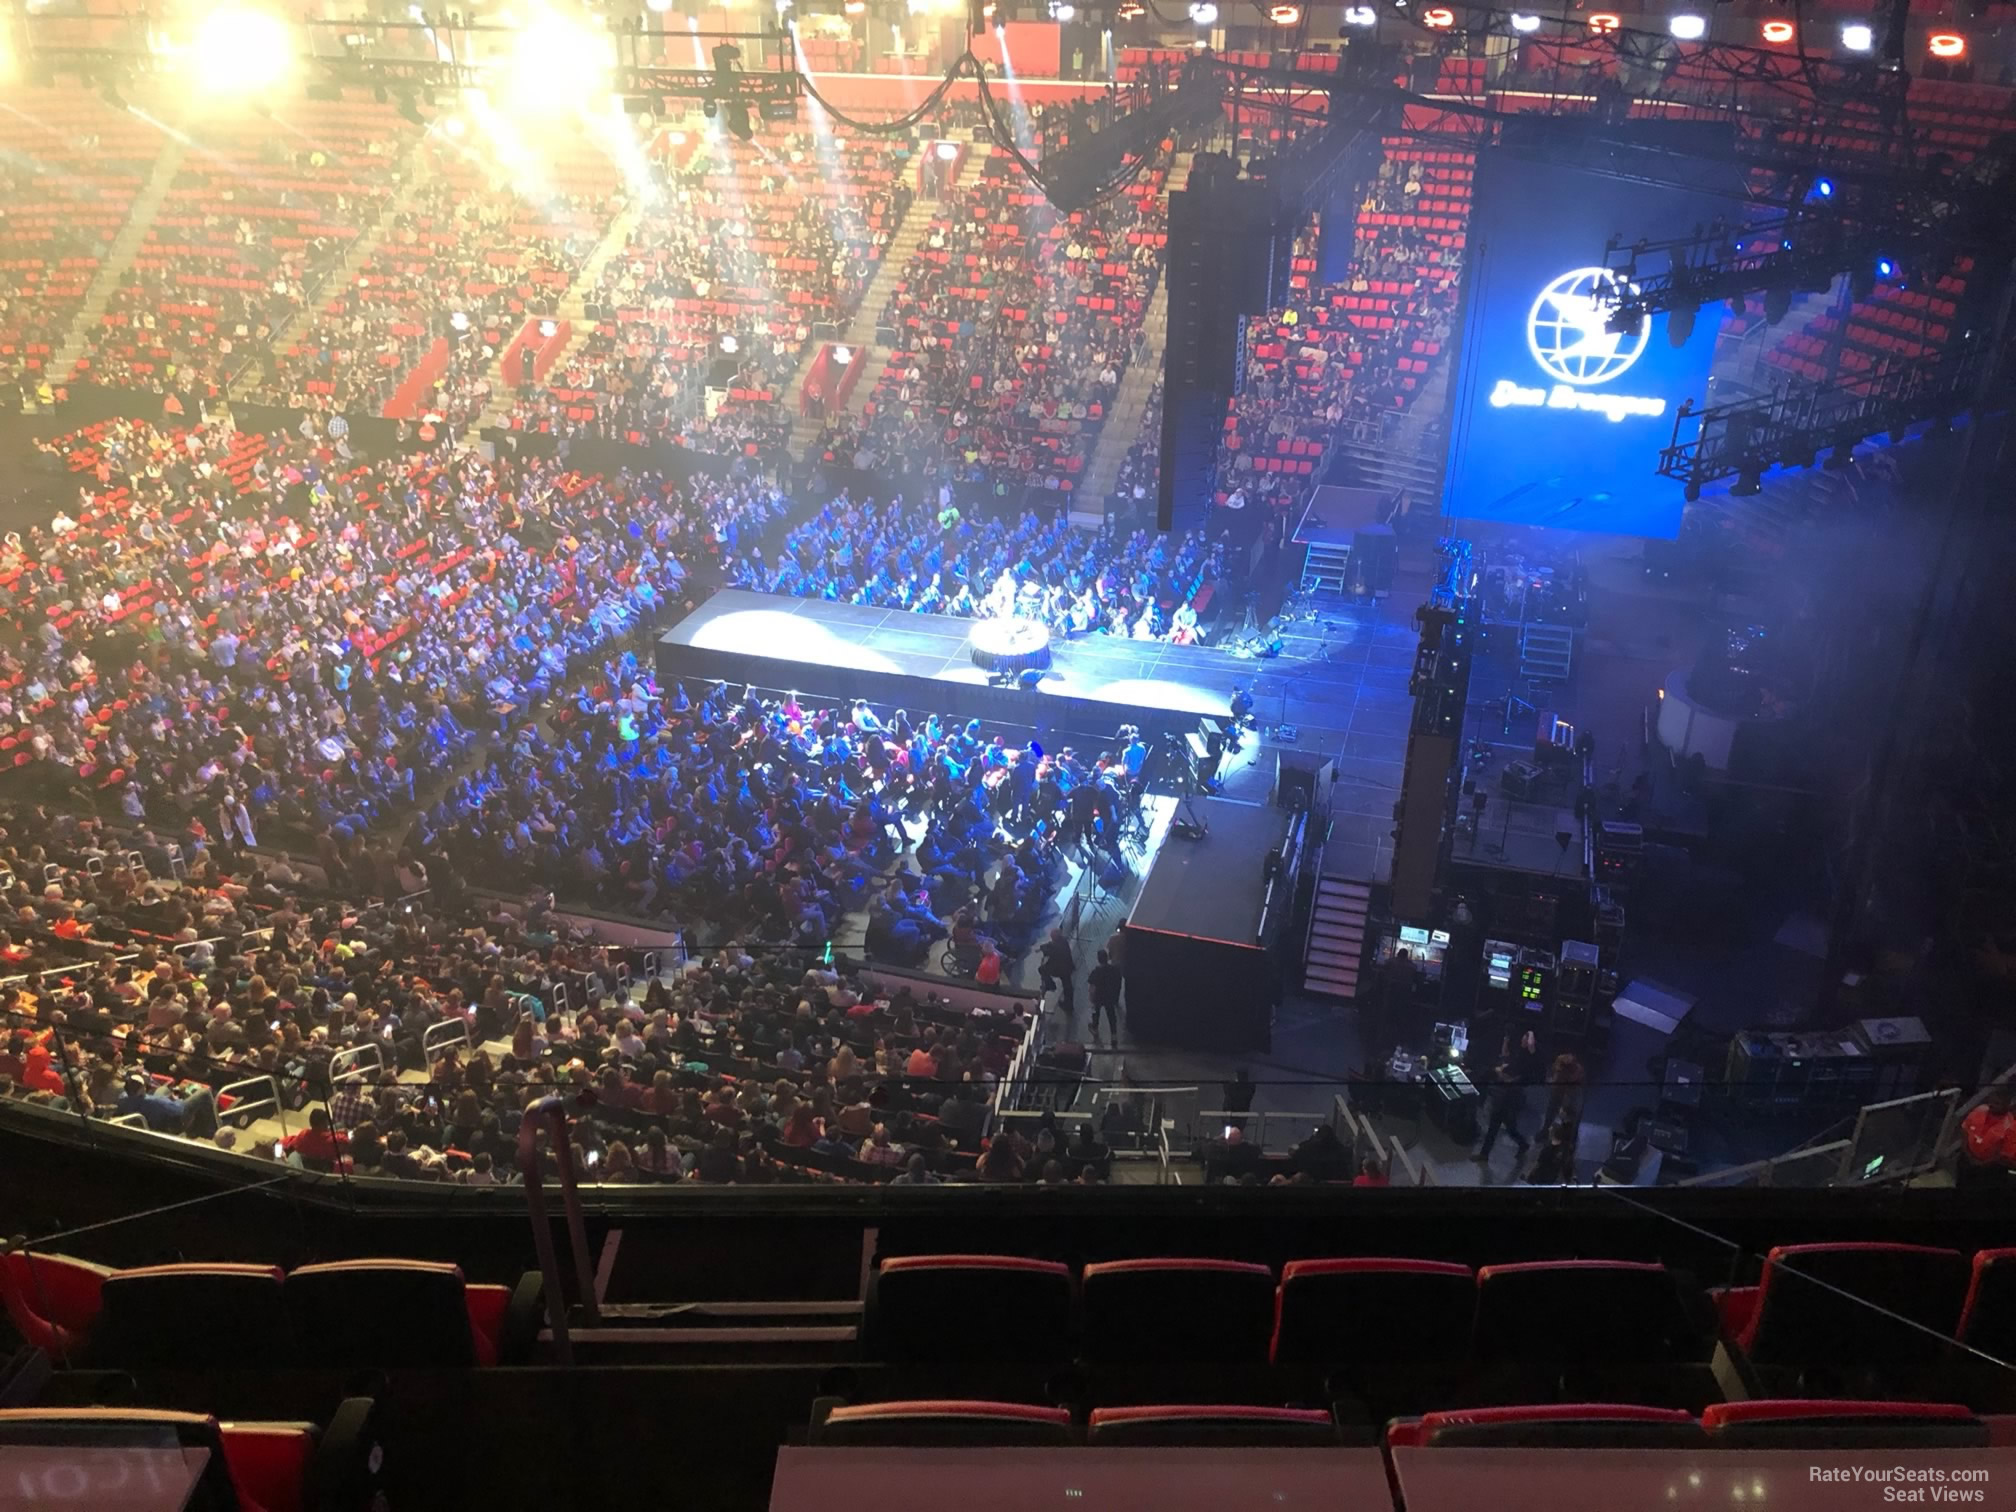 Concert Seat View for Little Caesars Arena Mezzanine 7, Row 2